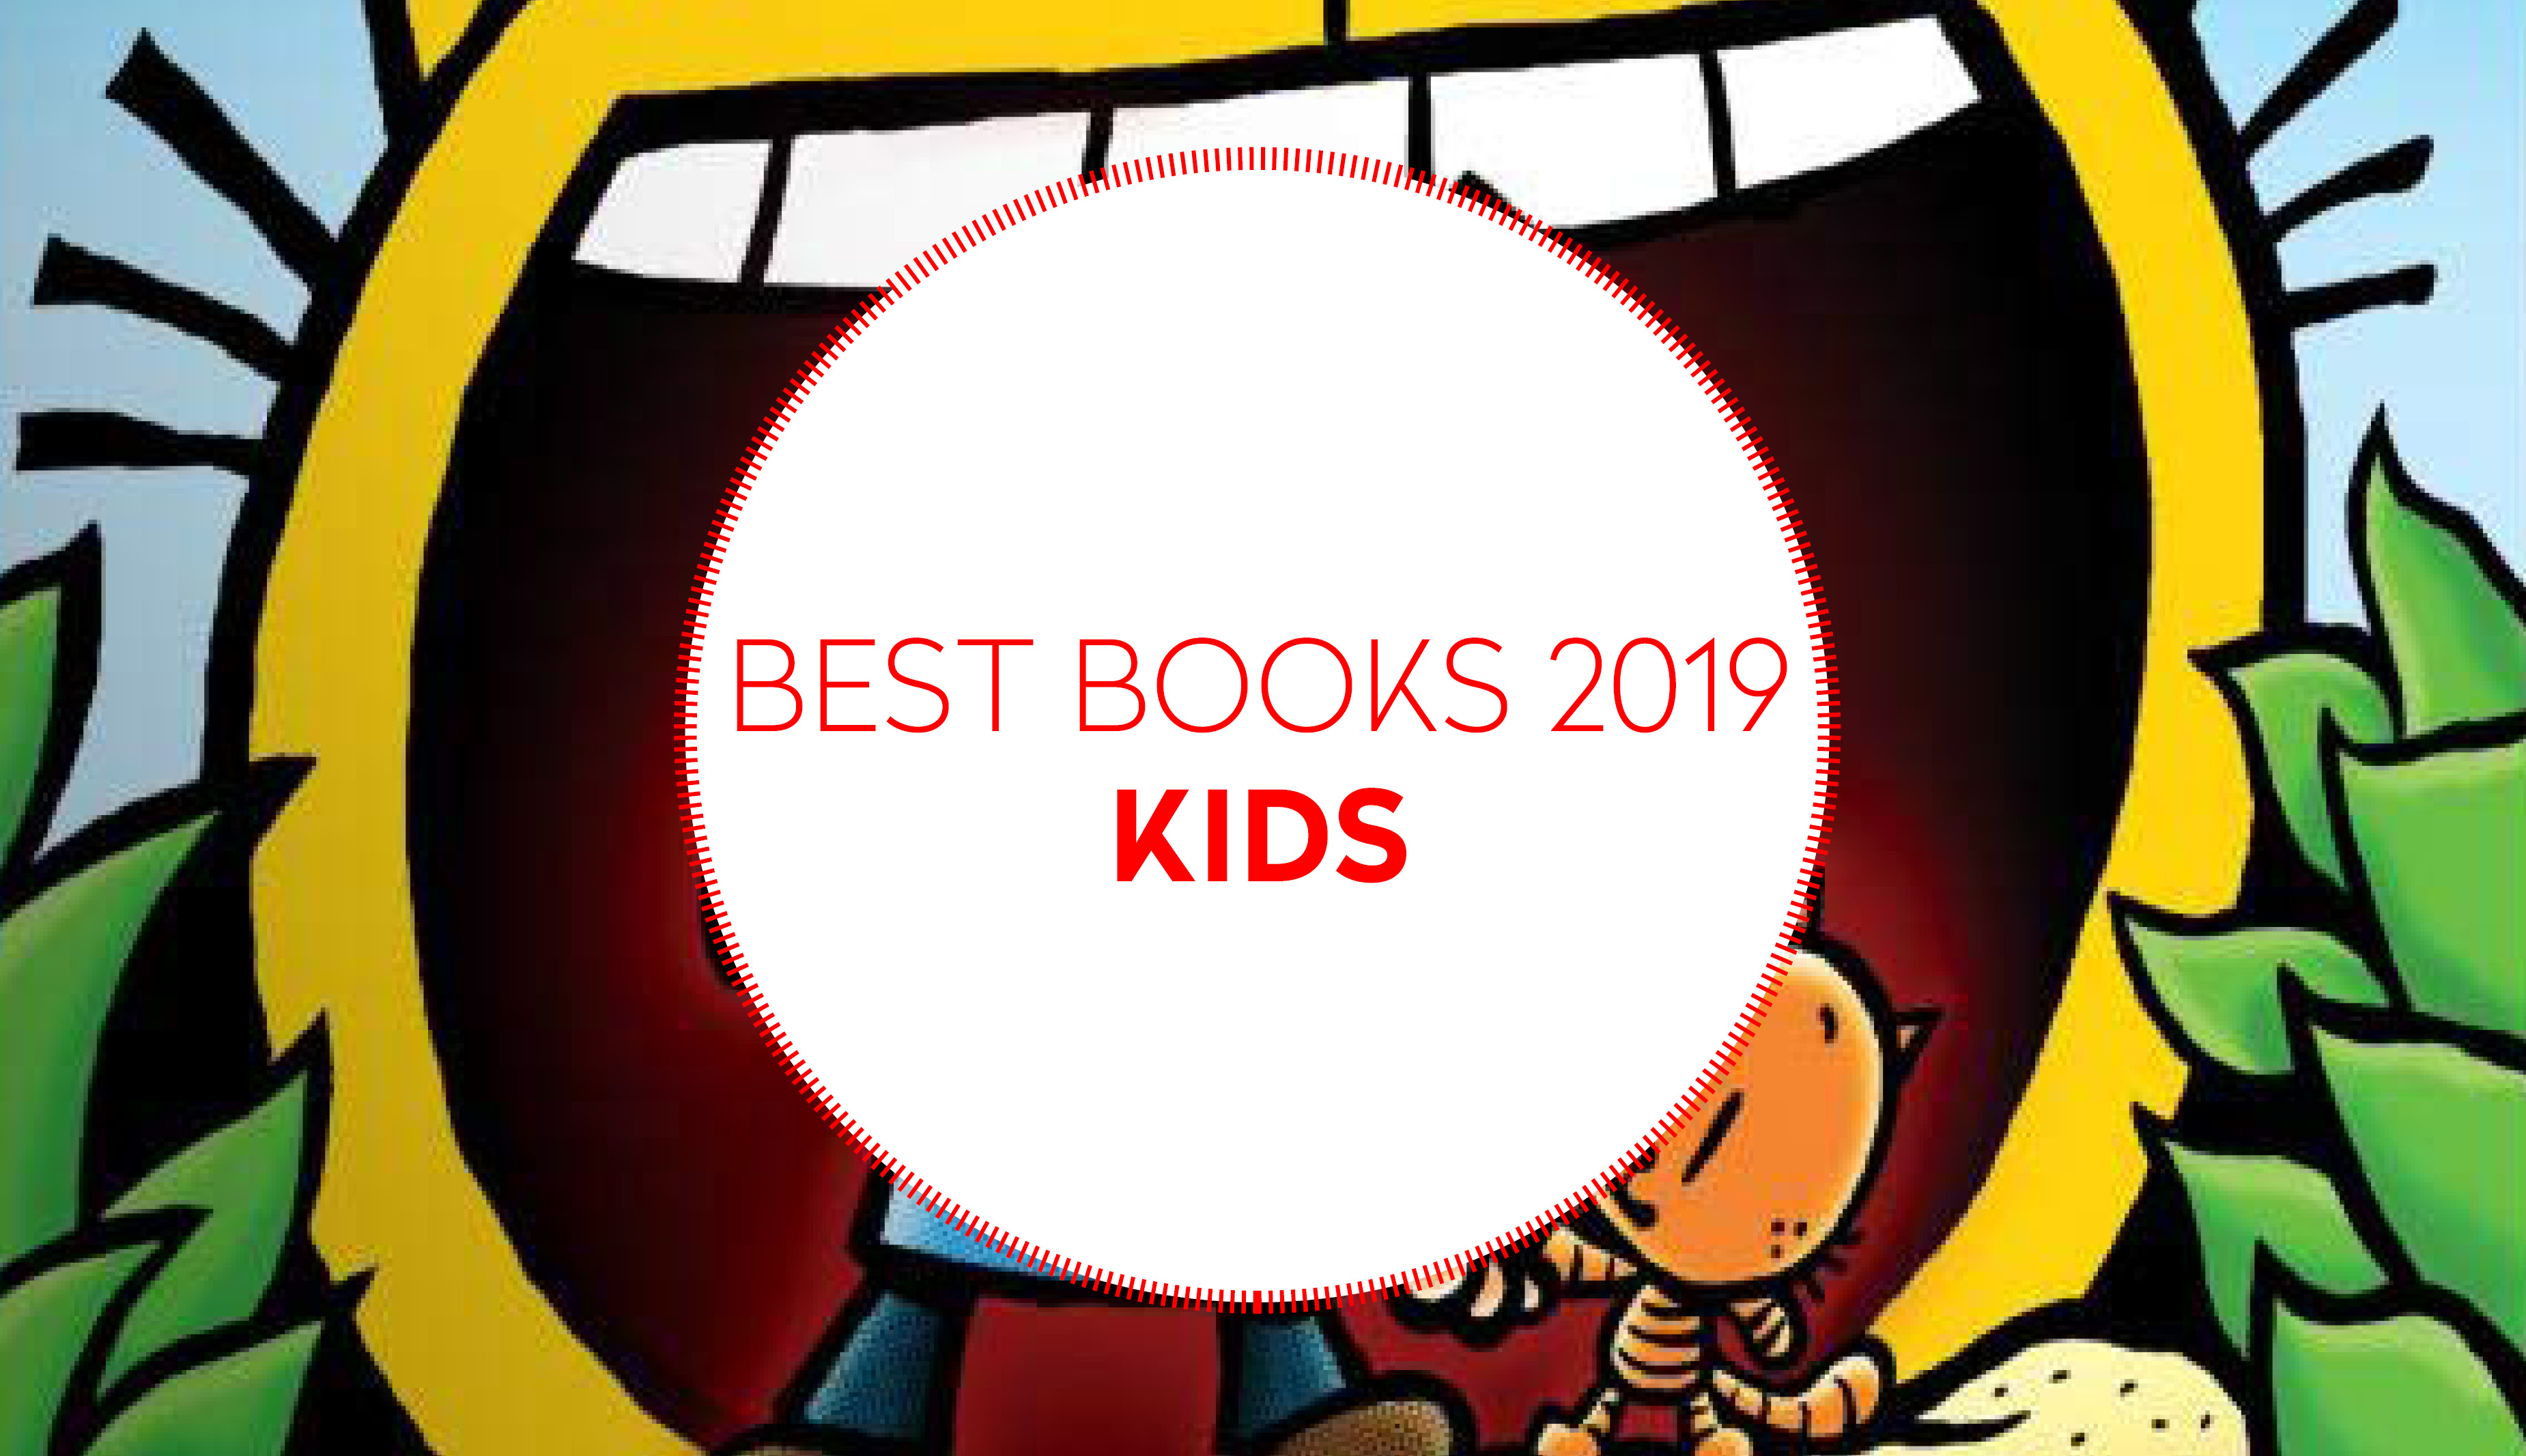 BEST Books 2019 Kids